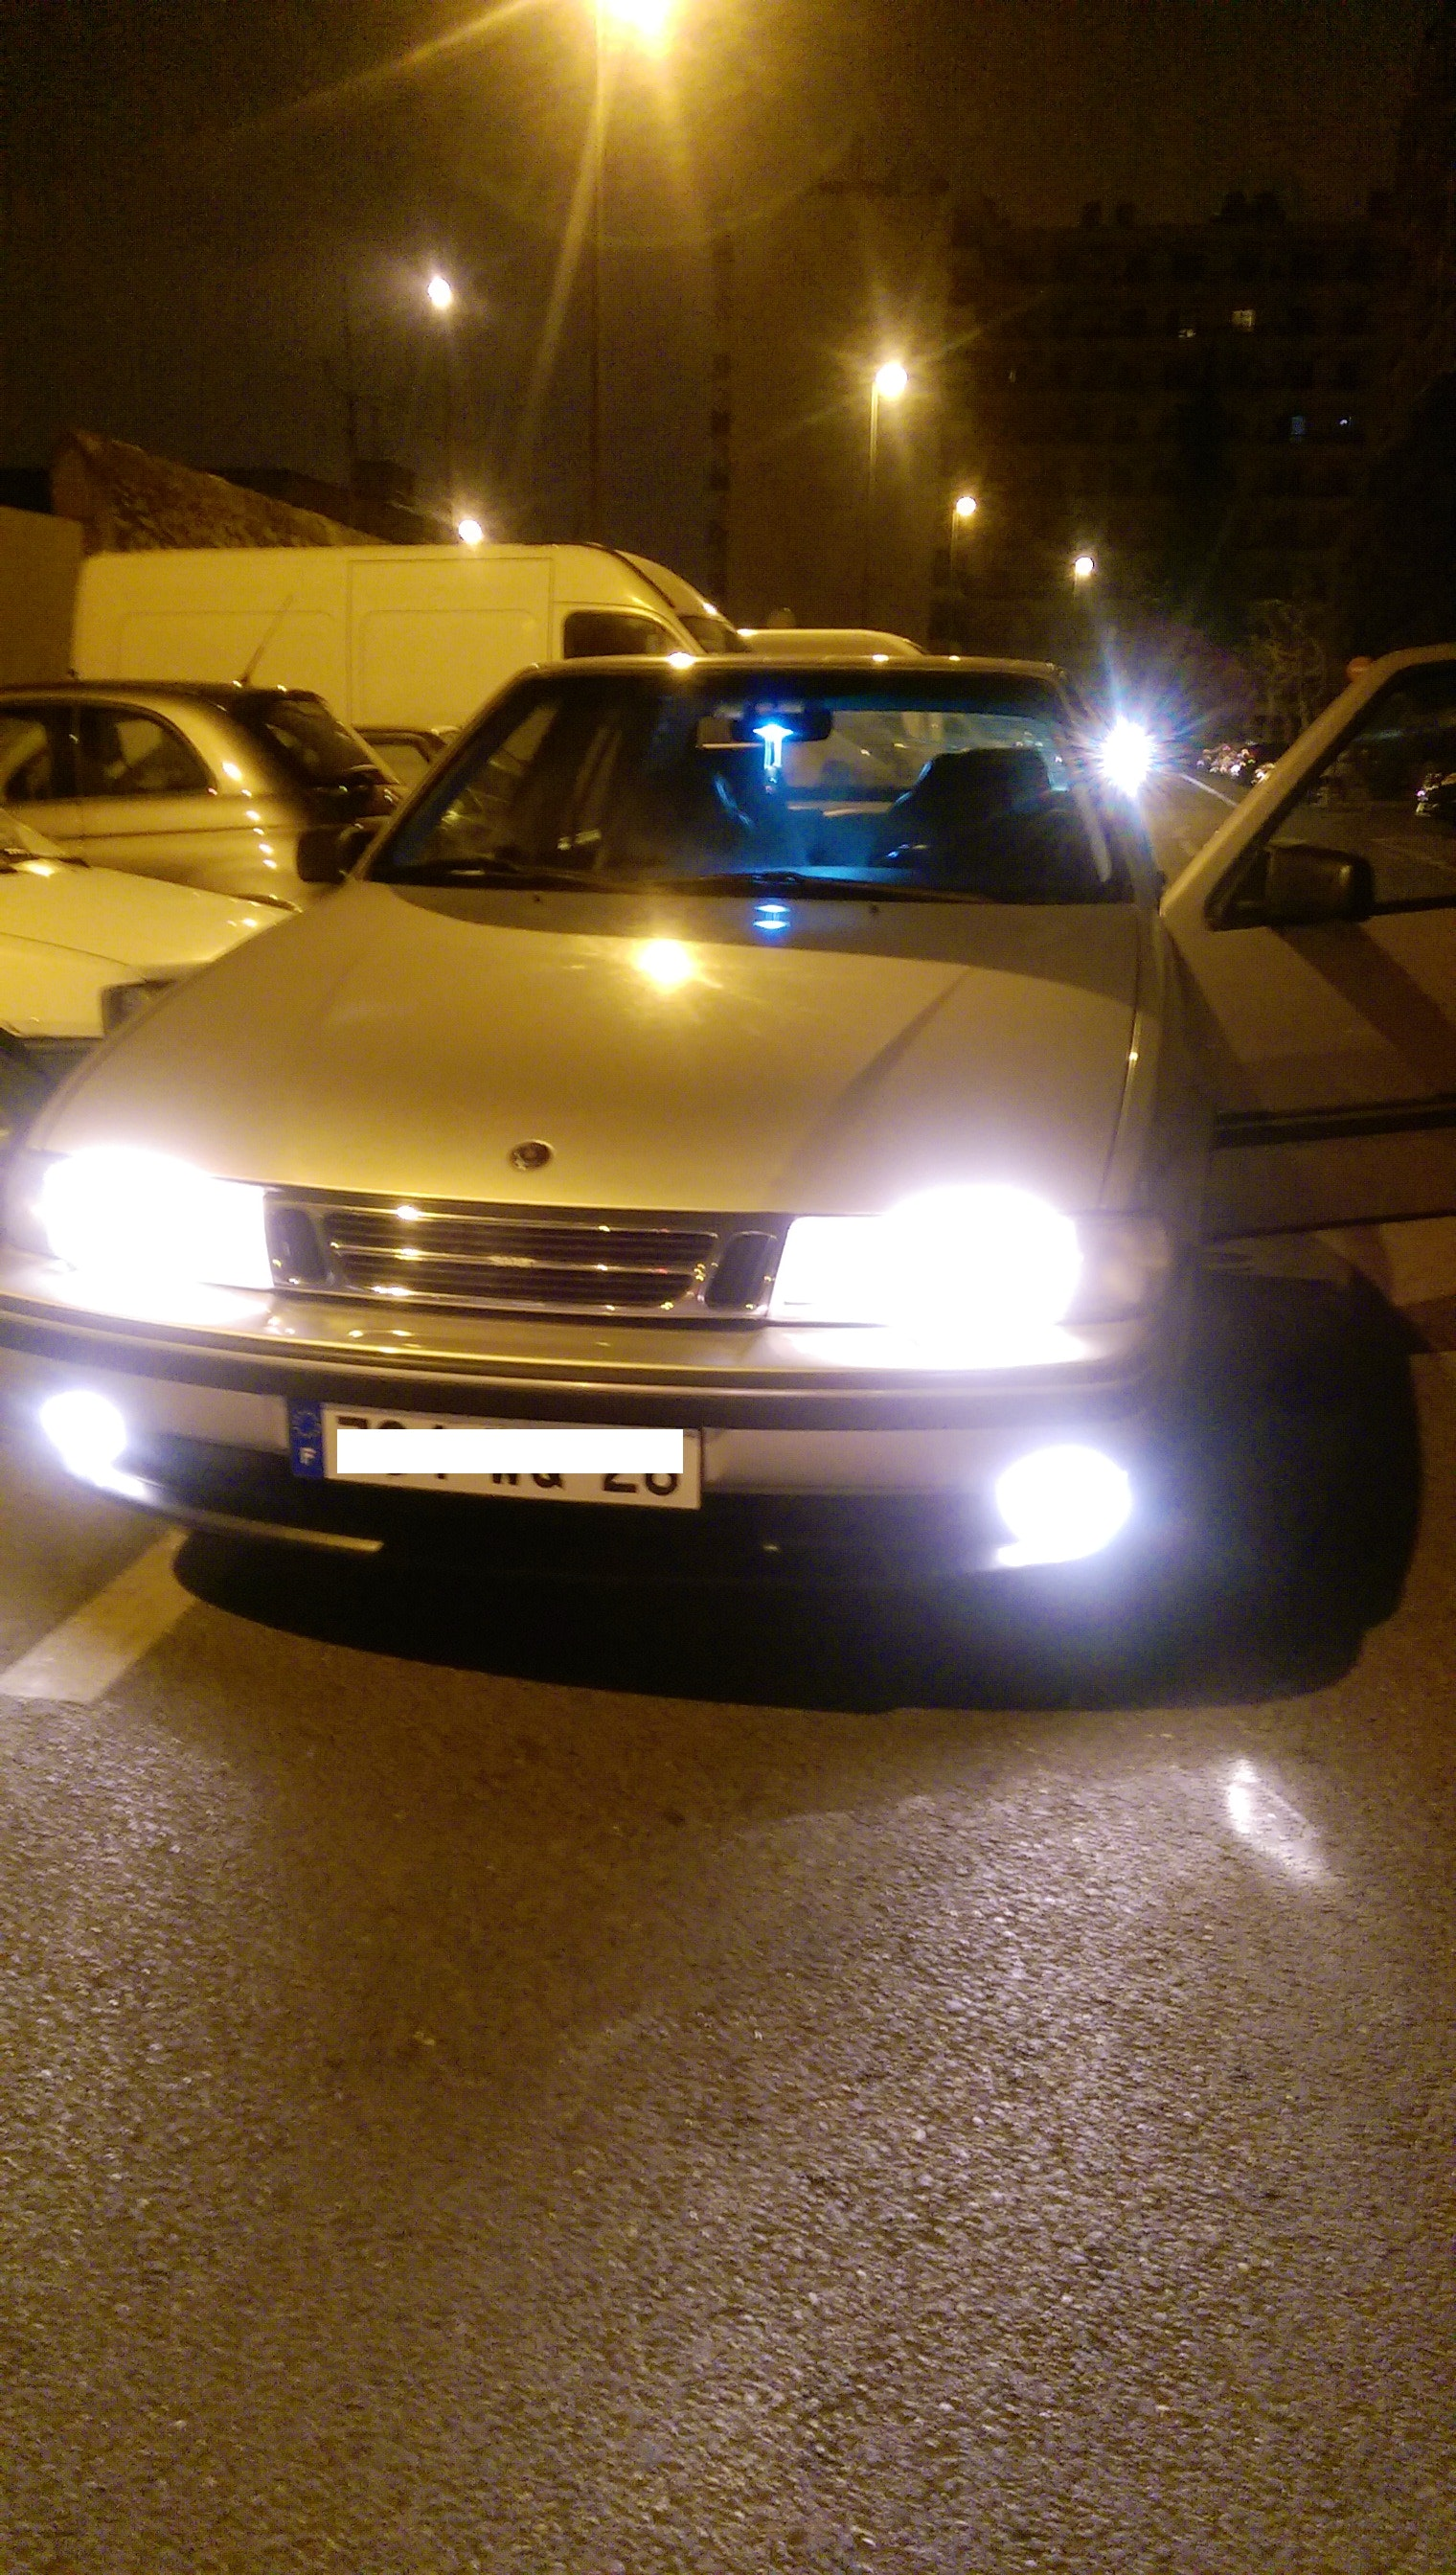 saab 9000, 1996, Essence - Berline Marseille (13)